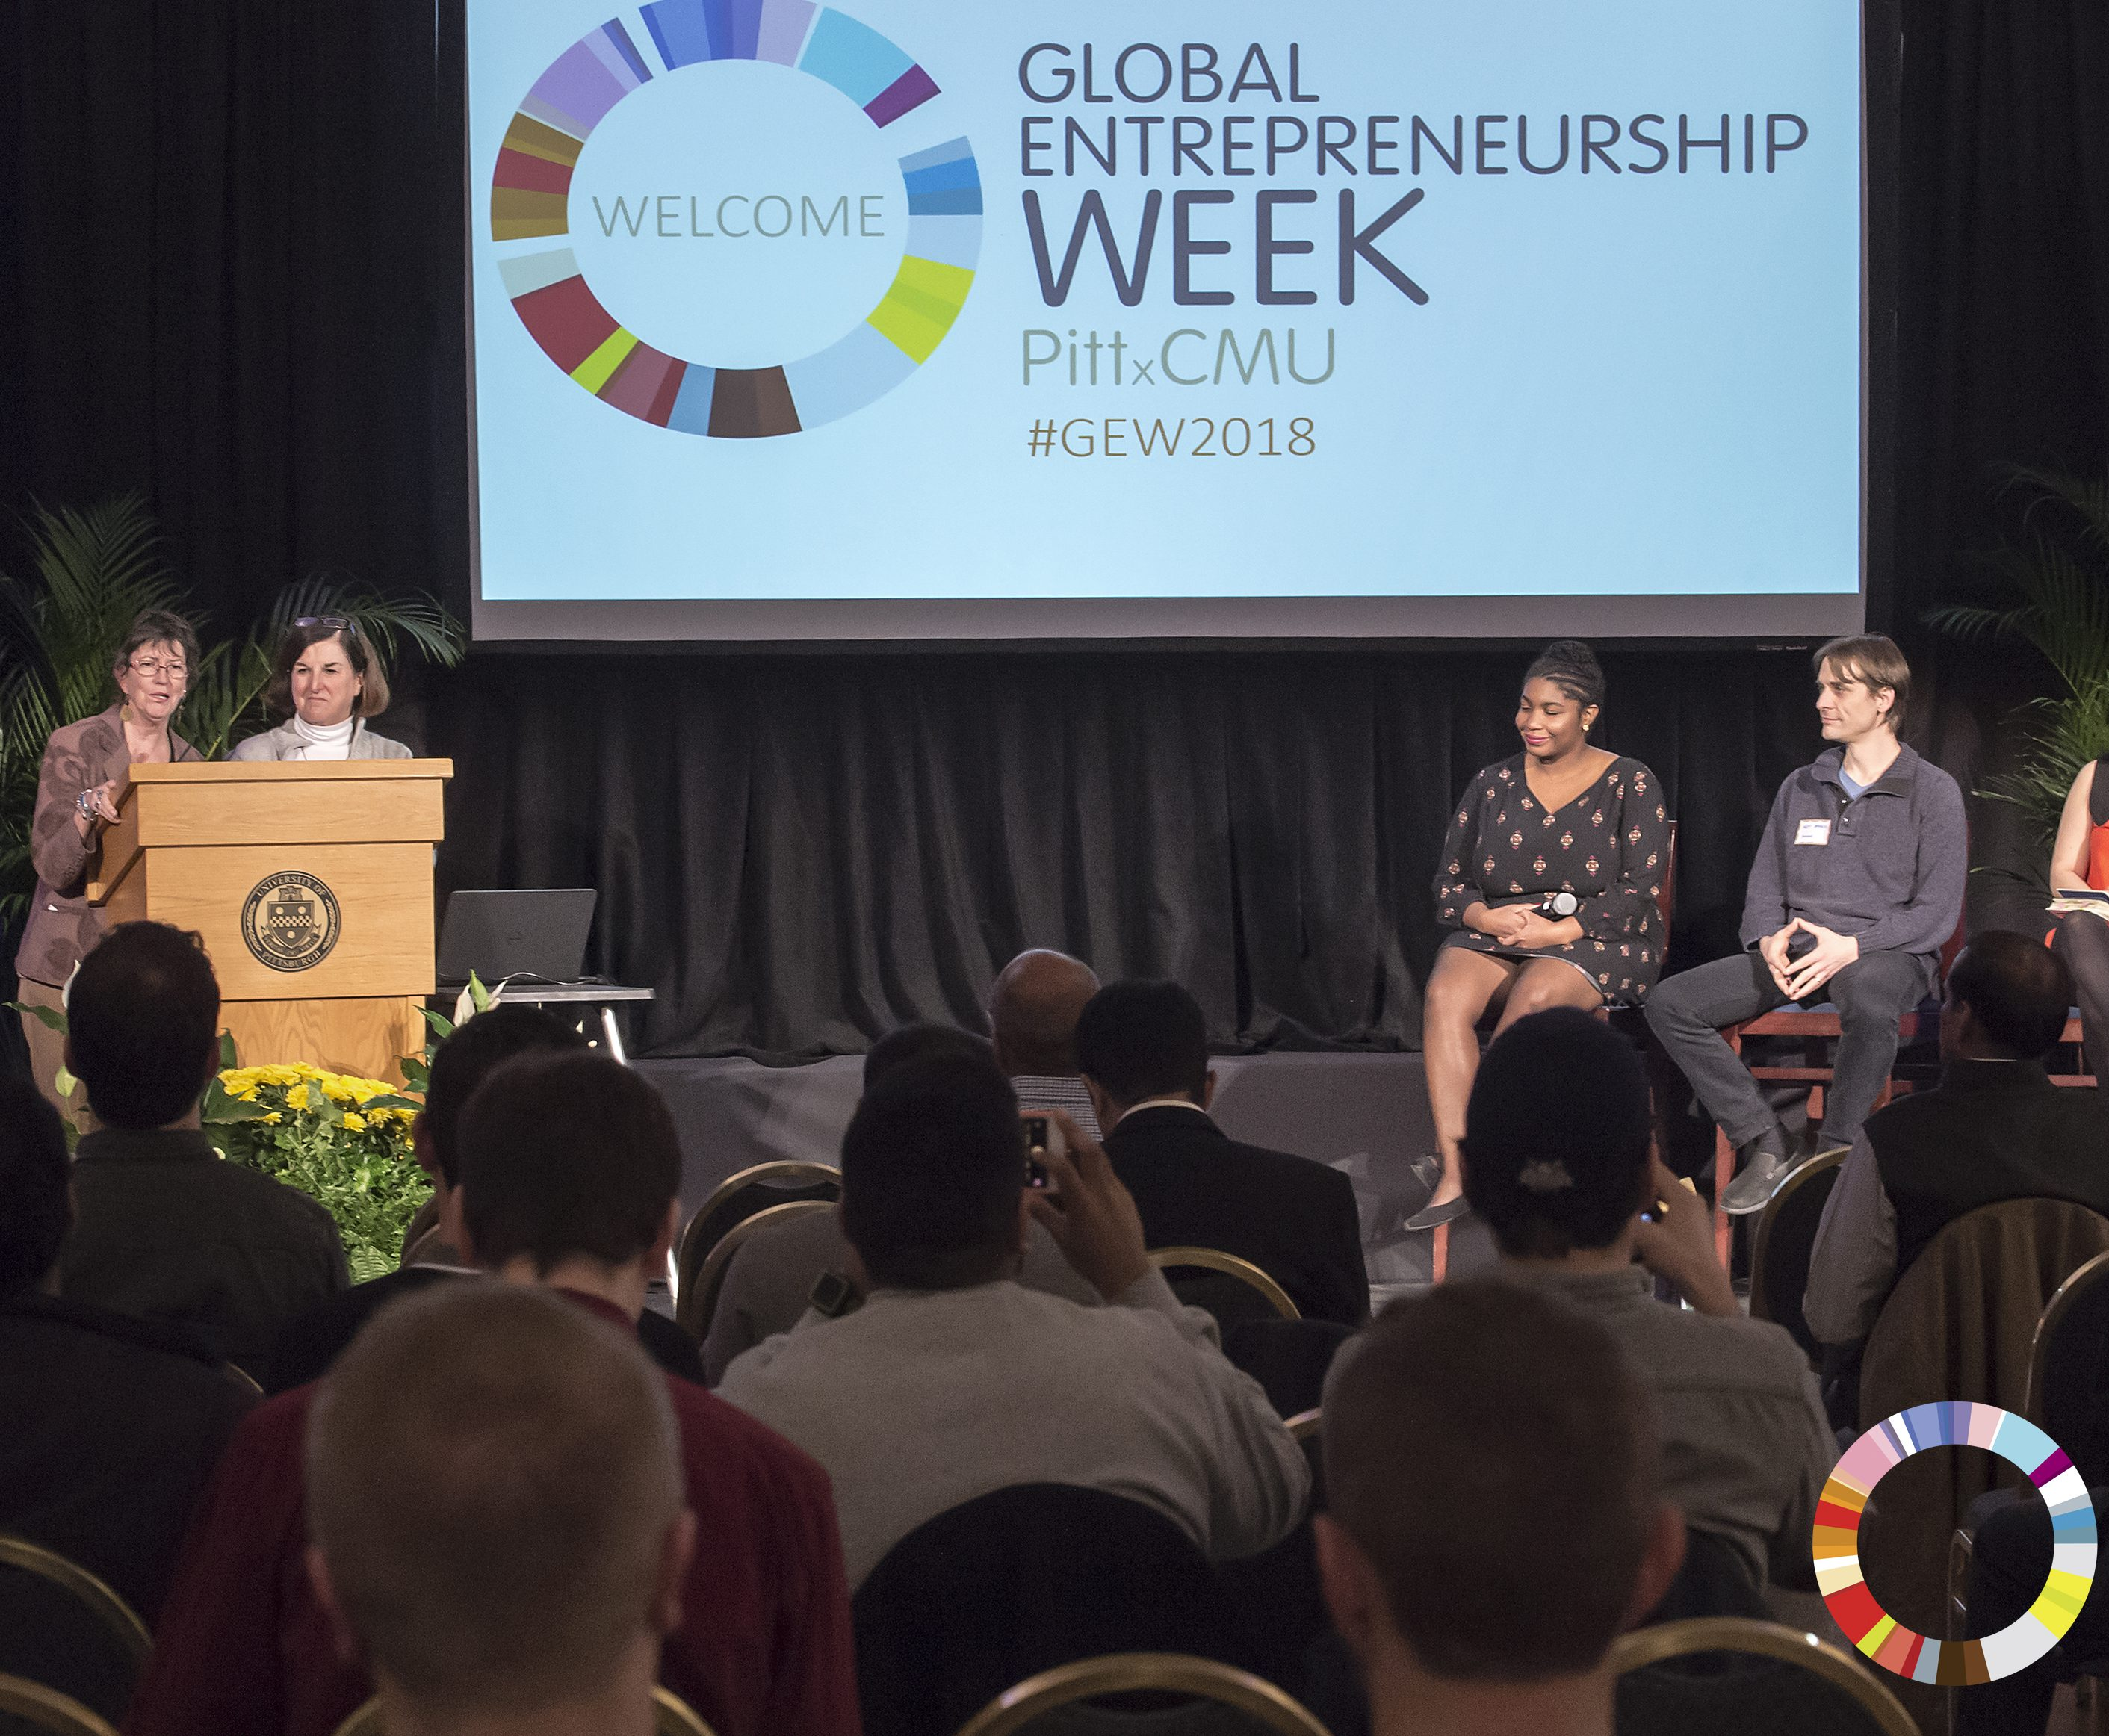 2018 Global Entrepreneurship Week, Steel City Startups event held at the Connolly Ballroom, hosted by Pitt and CMU.